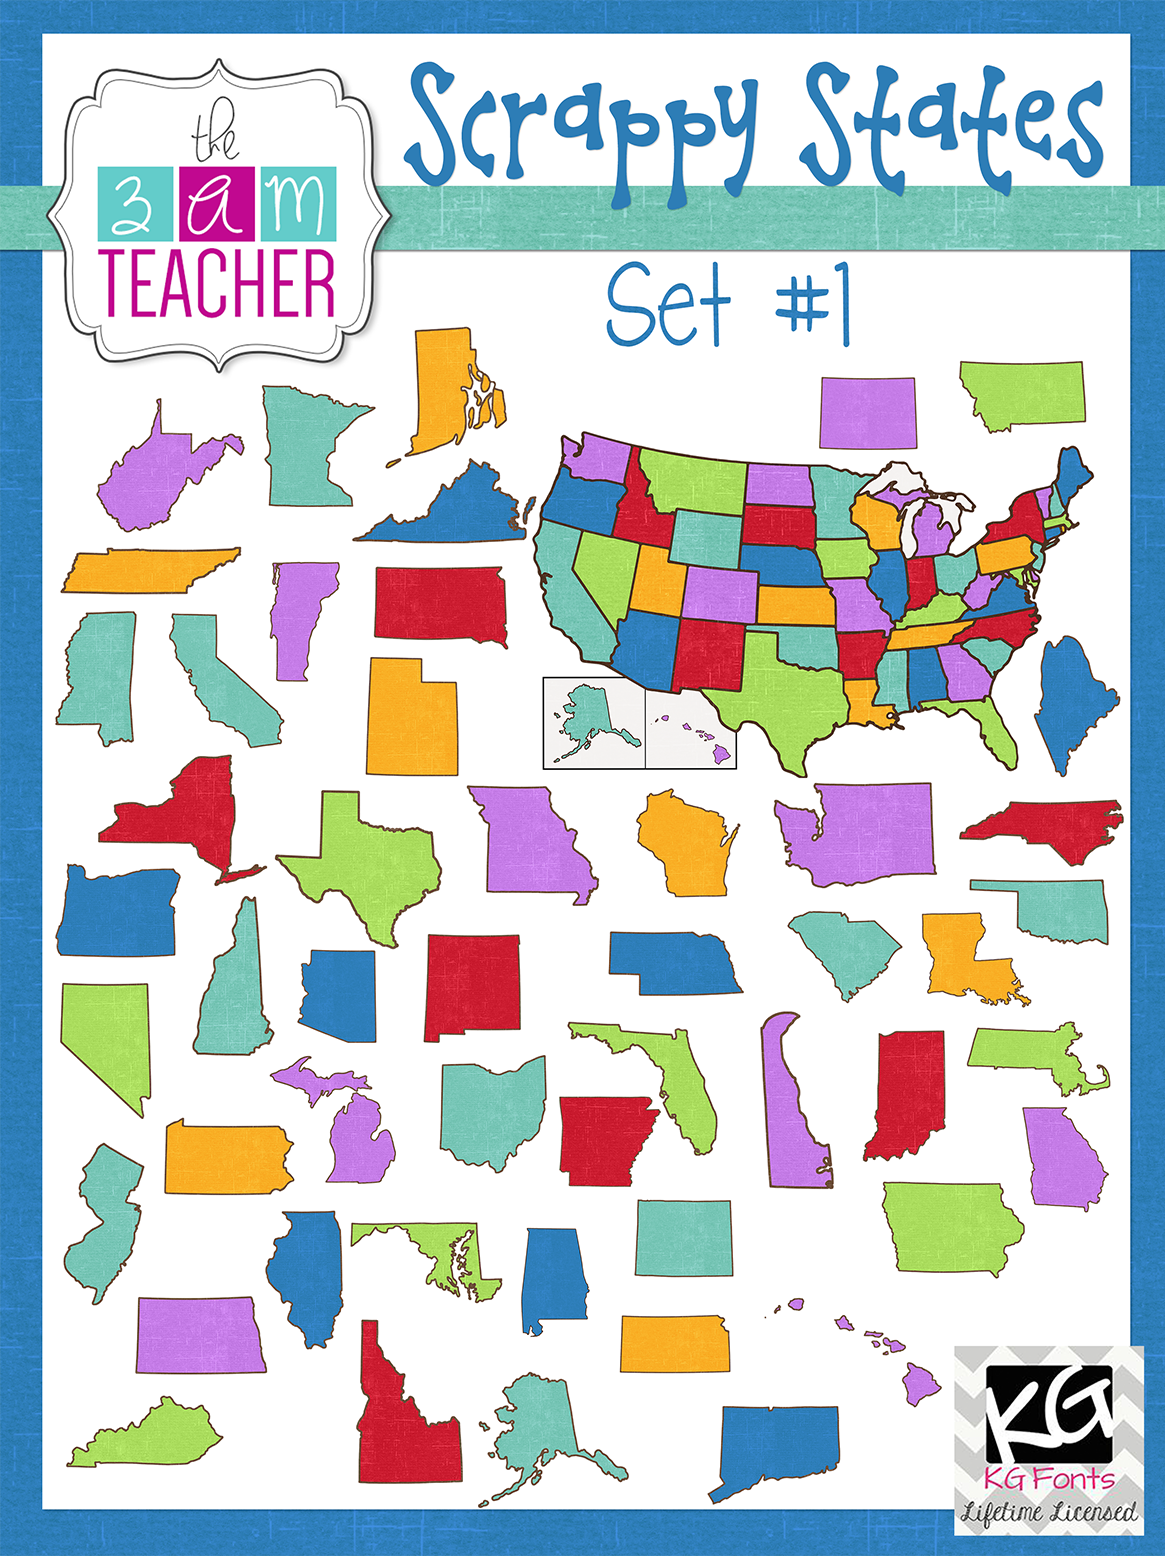 50 states clip art image library download 50 states clip art - ClipartFest image library download